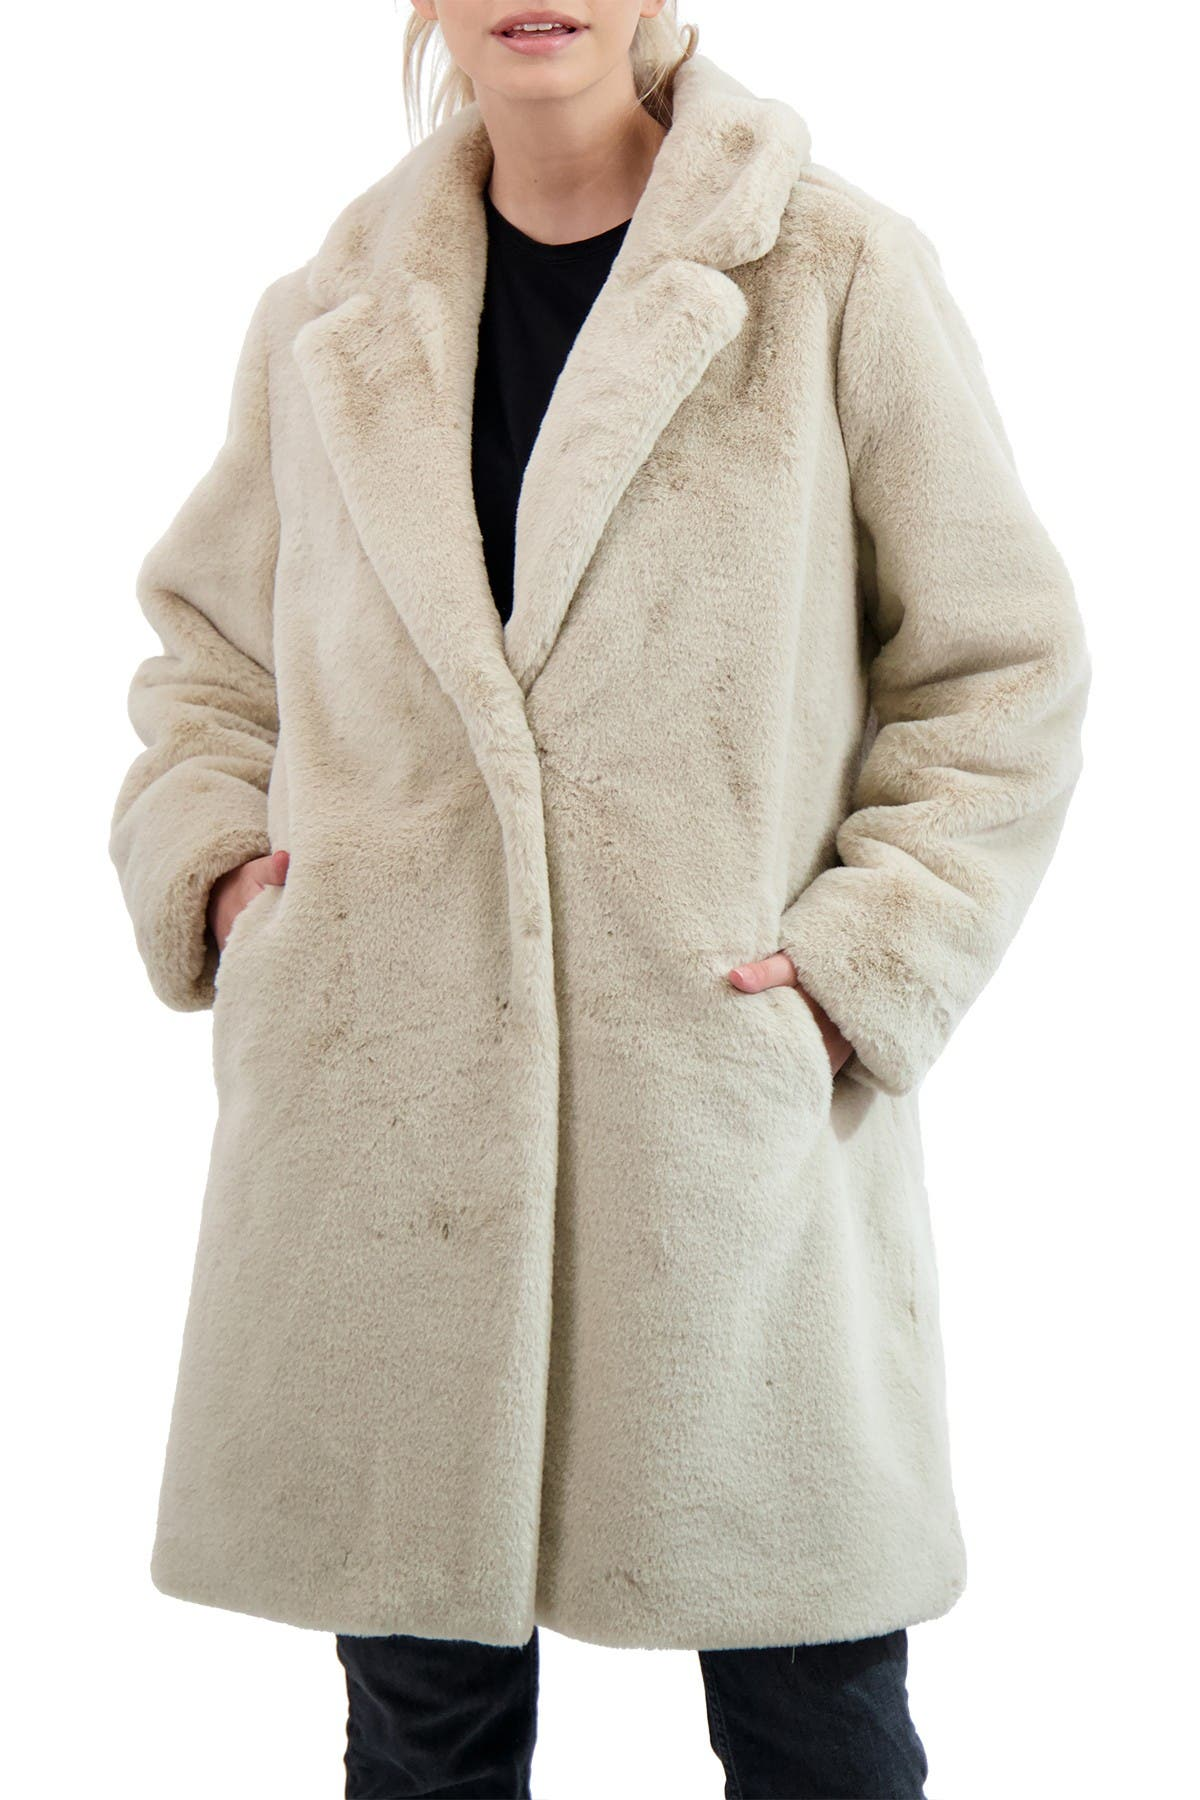 Image of Sebby Collection Faux Fur Coat